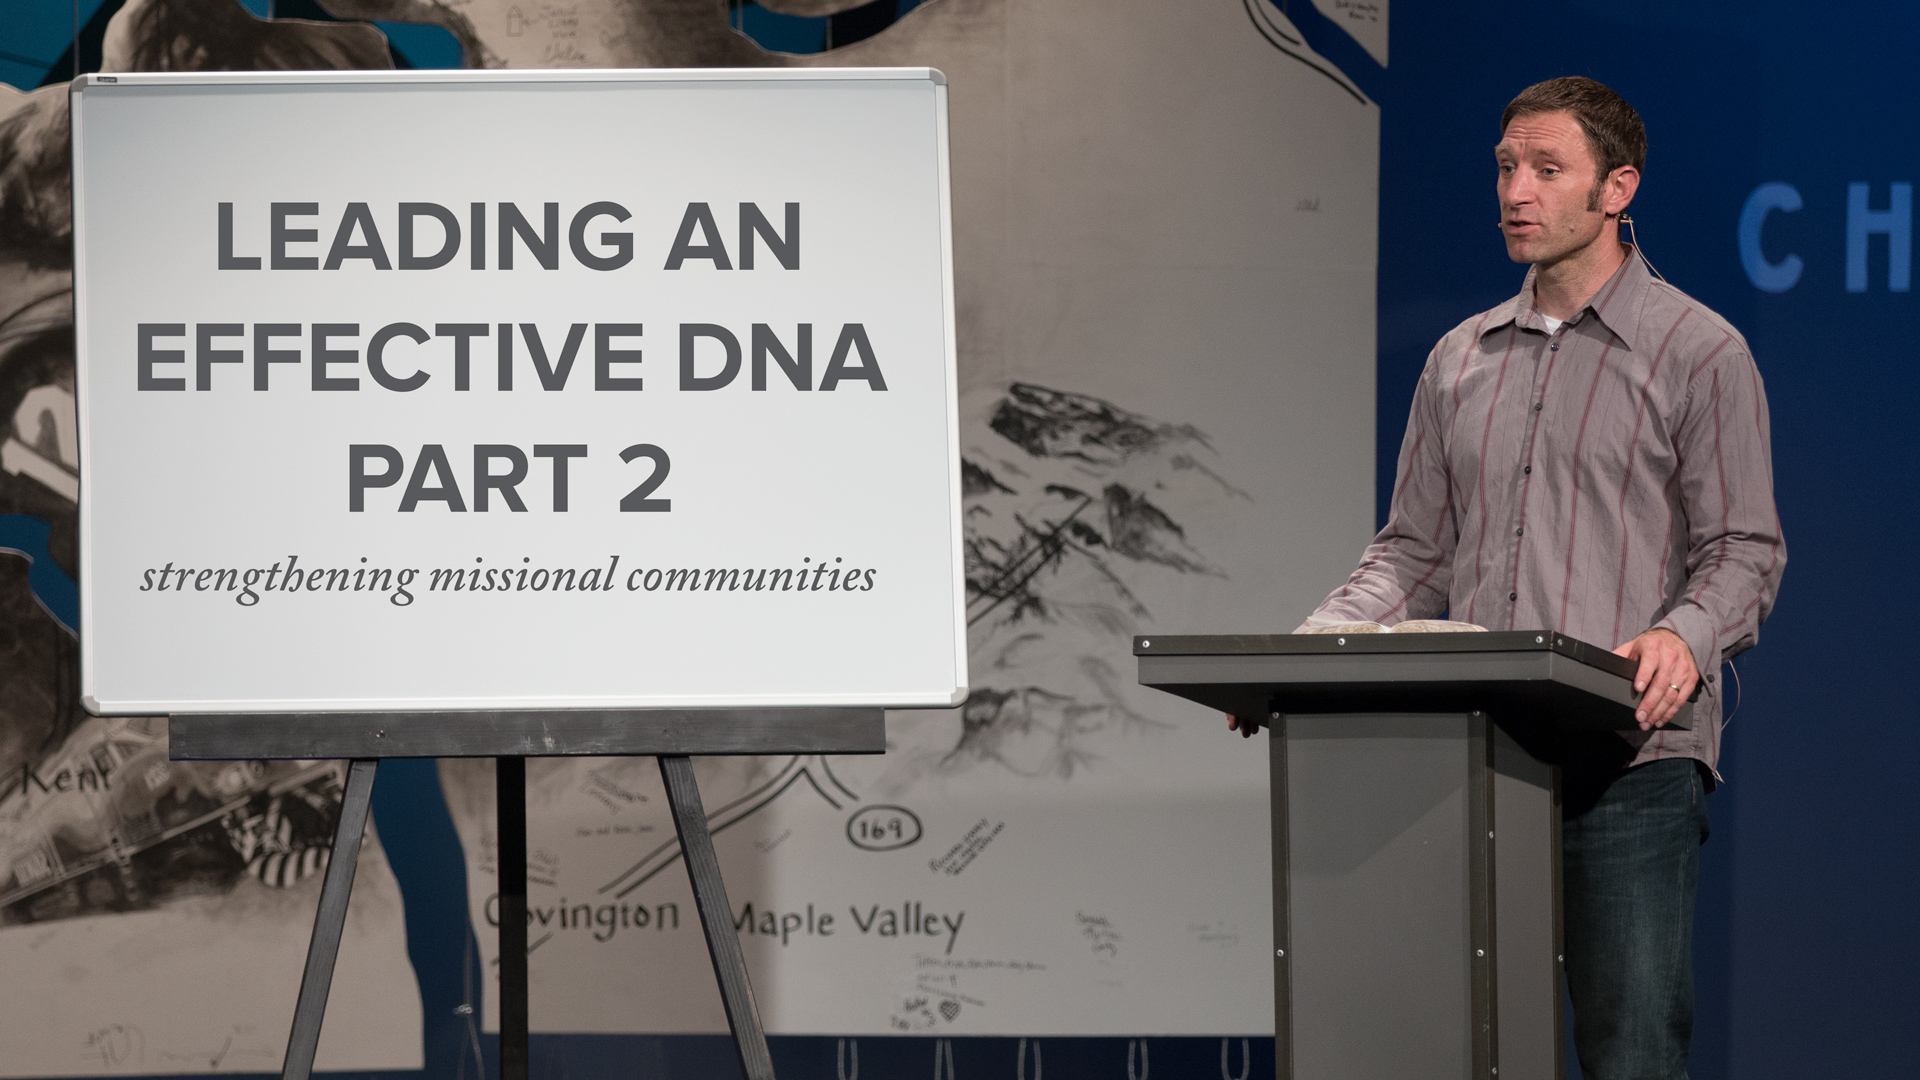 Leading an Effective DNA, Part 2